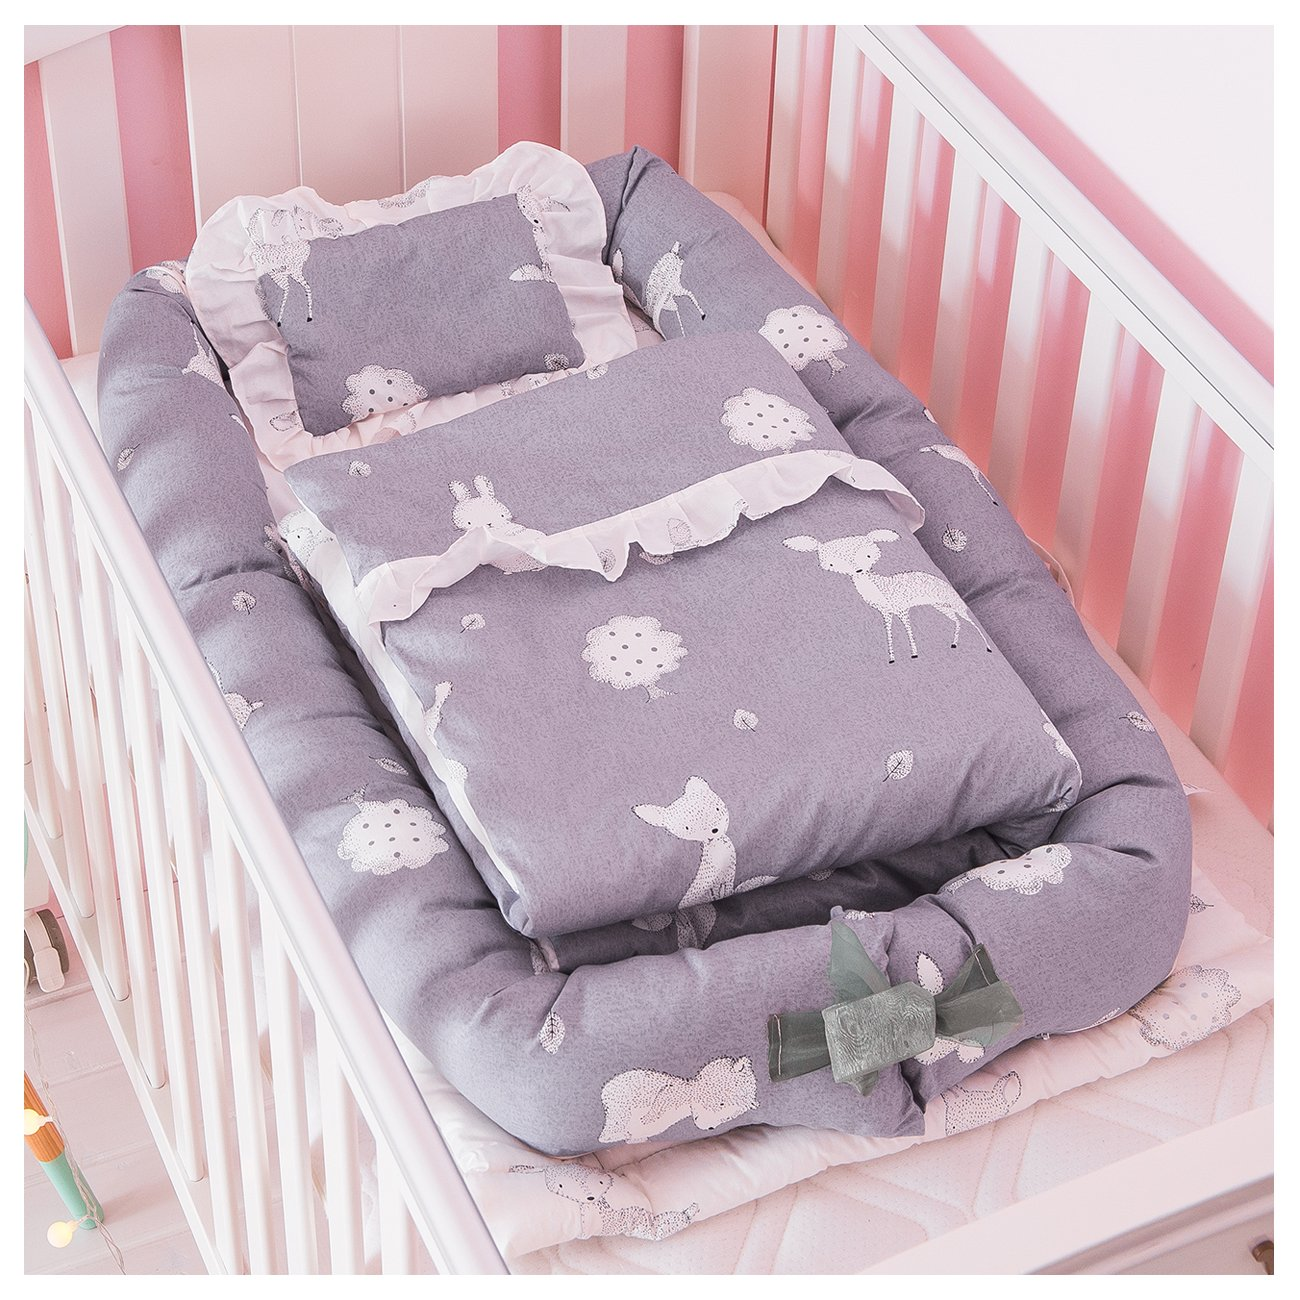 Demon Eight Baby Crib Mattress,Soft Comfortable Portable Baby Crib Bed for Co Sleeping Set 3 in 1,Fit for Newborn 0-24 Month (Gray) by Demon Eight